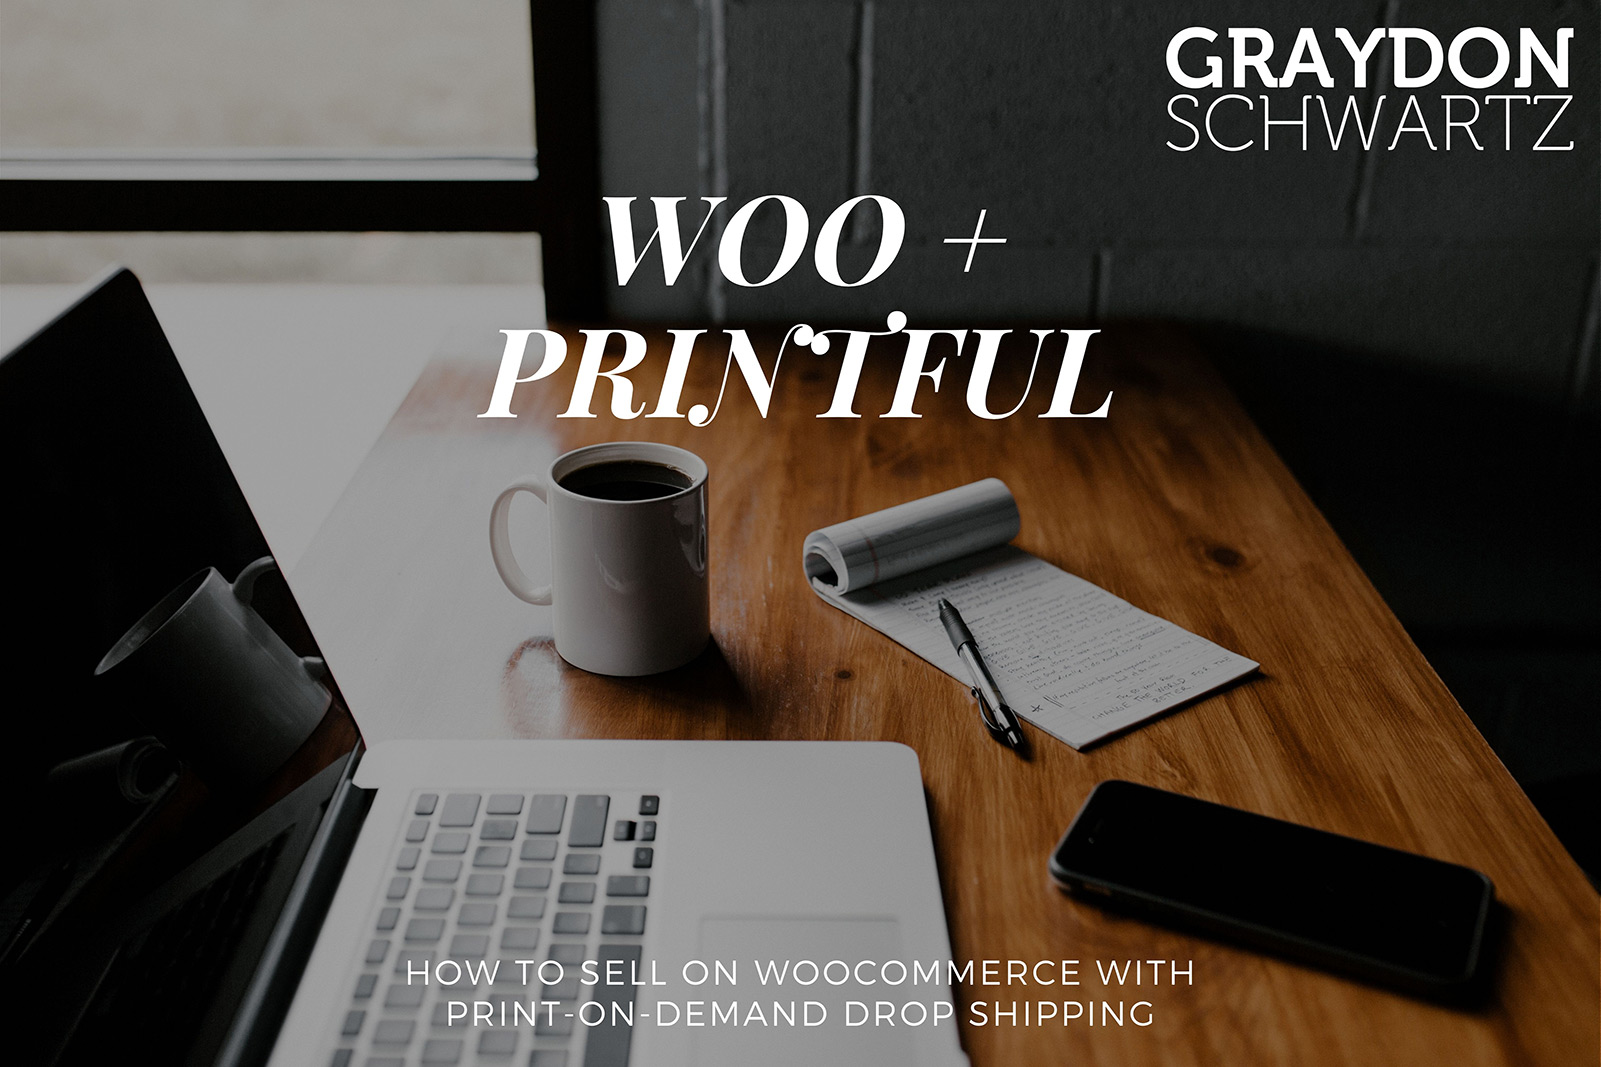 How to Sell on Woocommerce With Print-on-Demand Drop Shipping